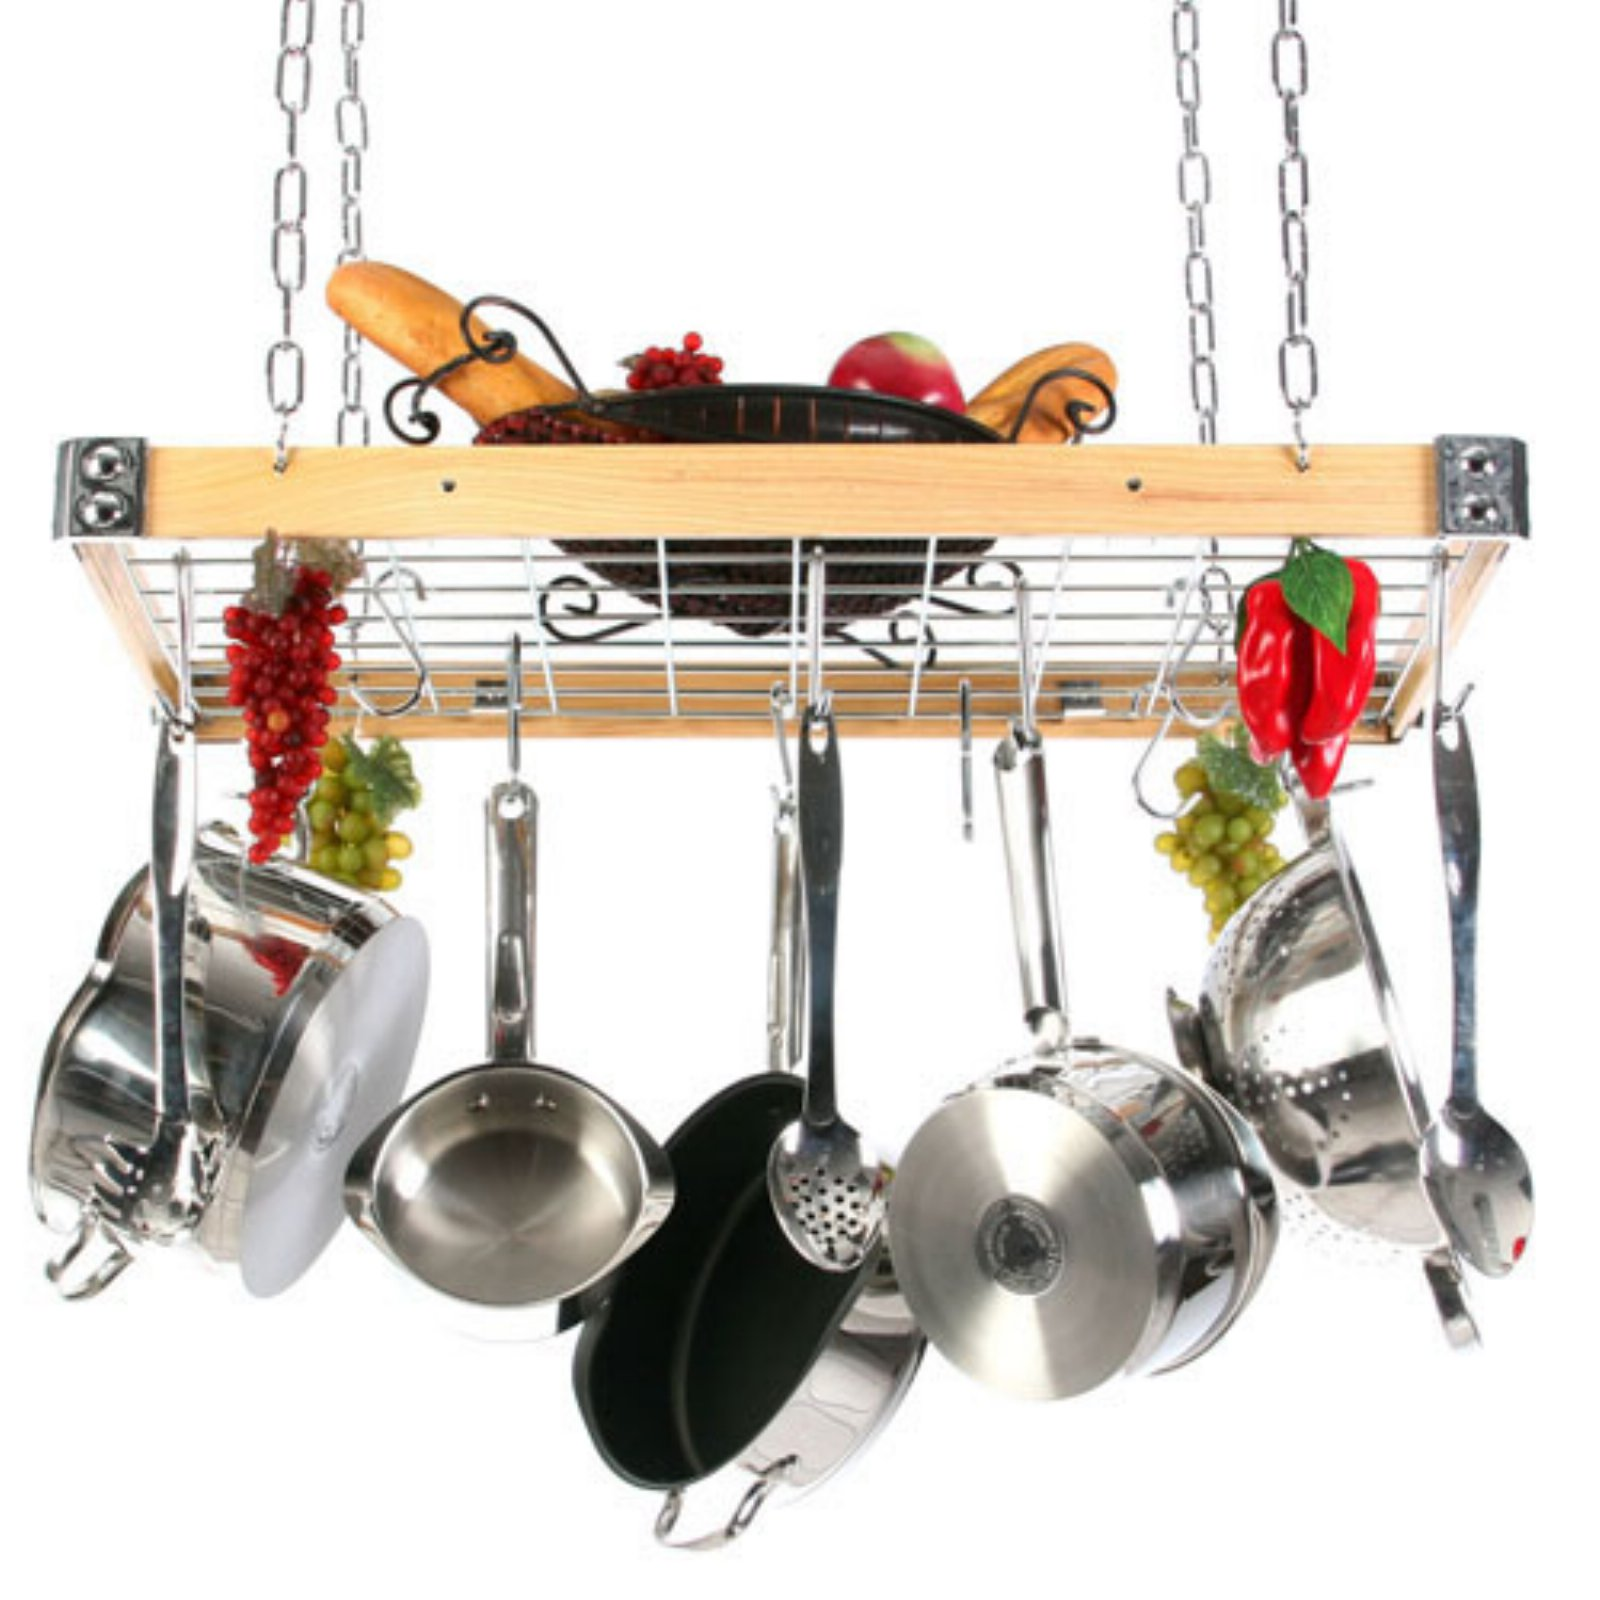 The Gourmet Wood and Metal Rectangle Pot Rack with Grid